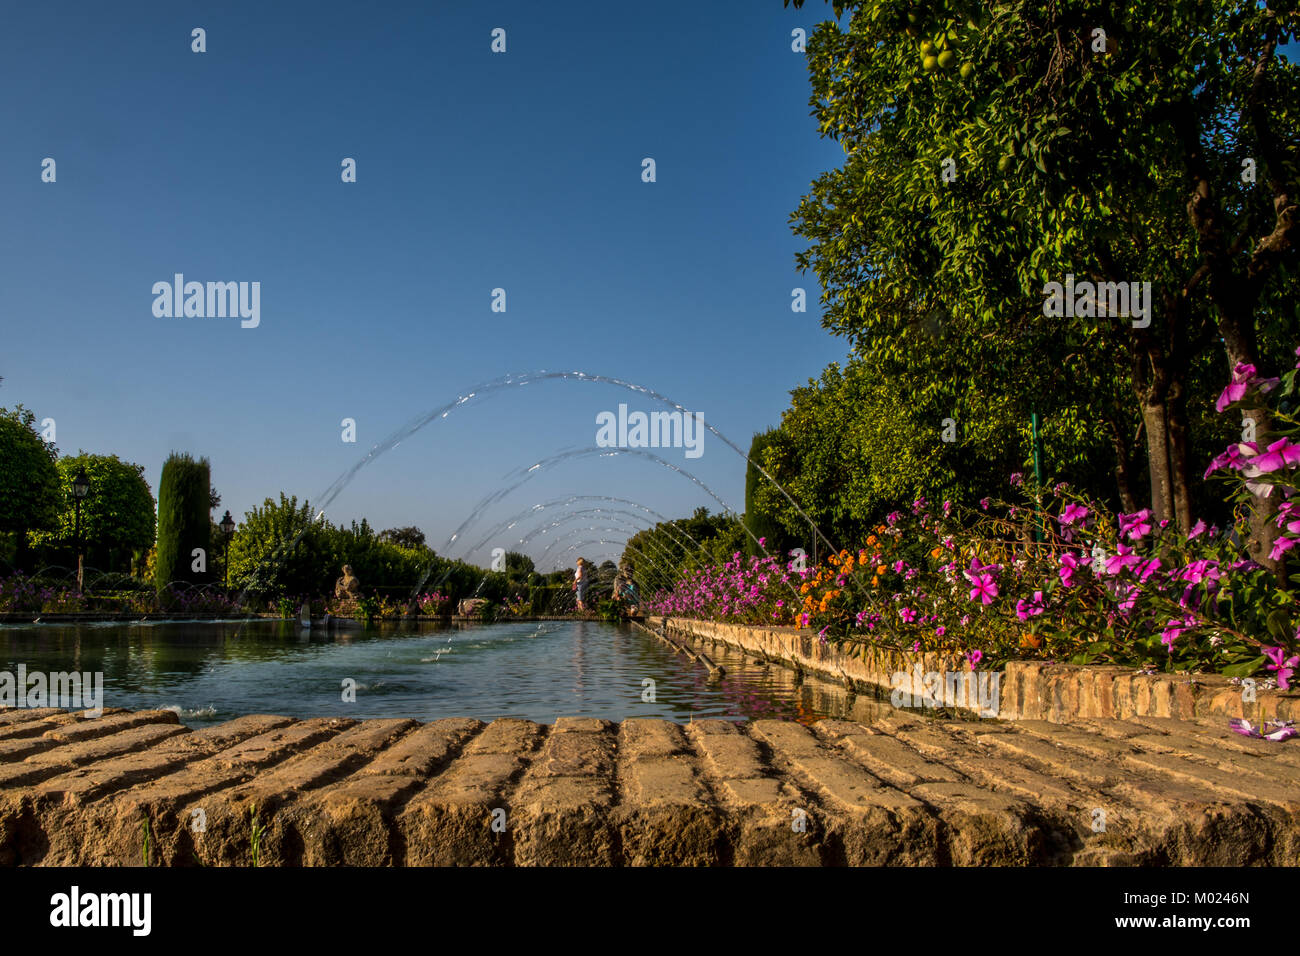 CORDOBA, ANDALUSIA / SPAIN - OCTOBER 14 2017:  FOUNTAINS IN THE PARK Stock Photo